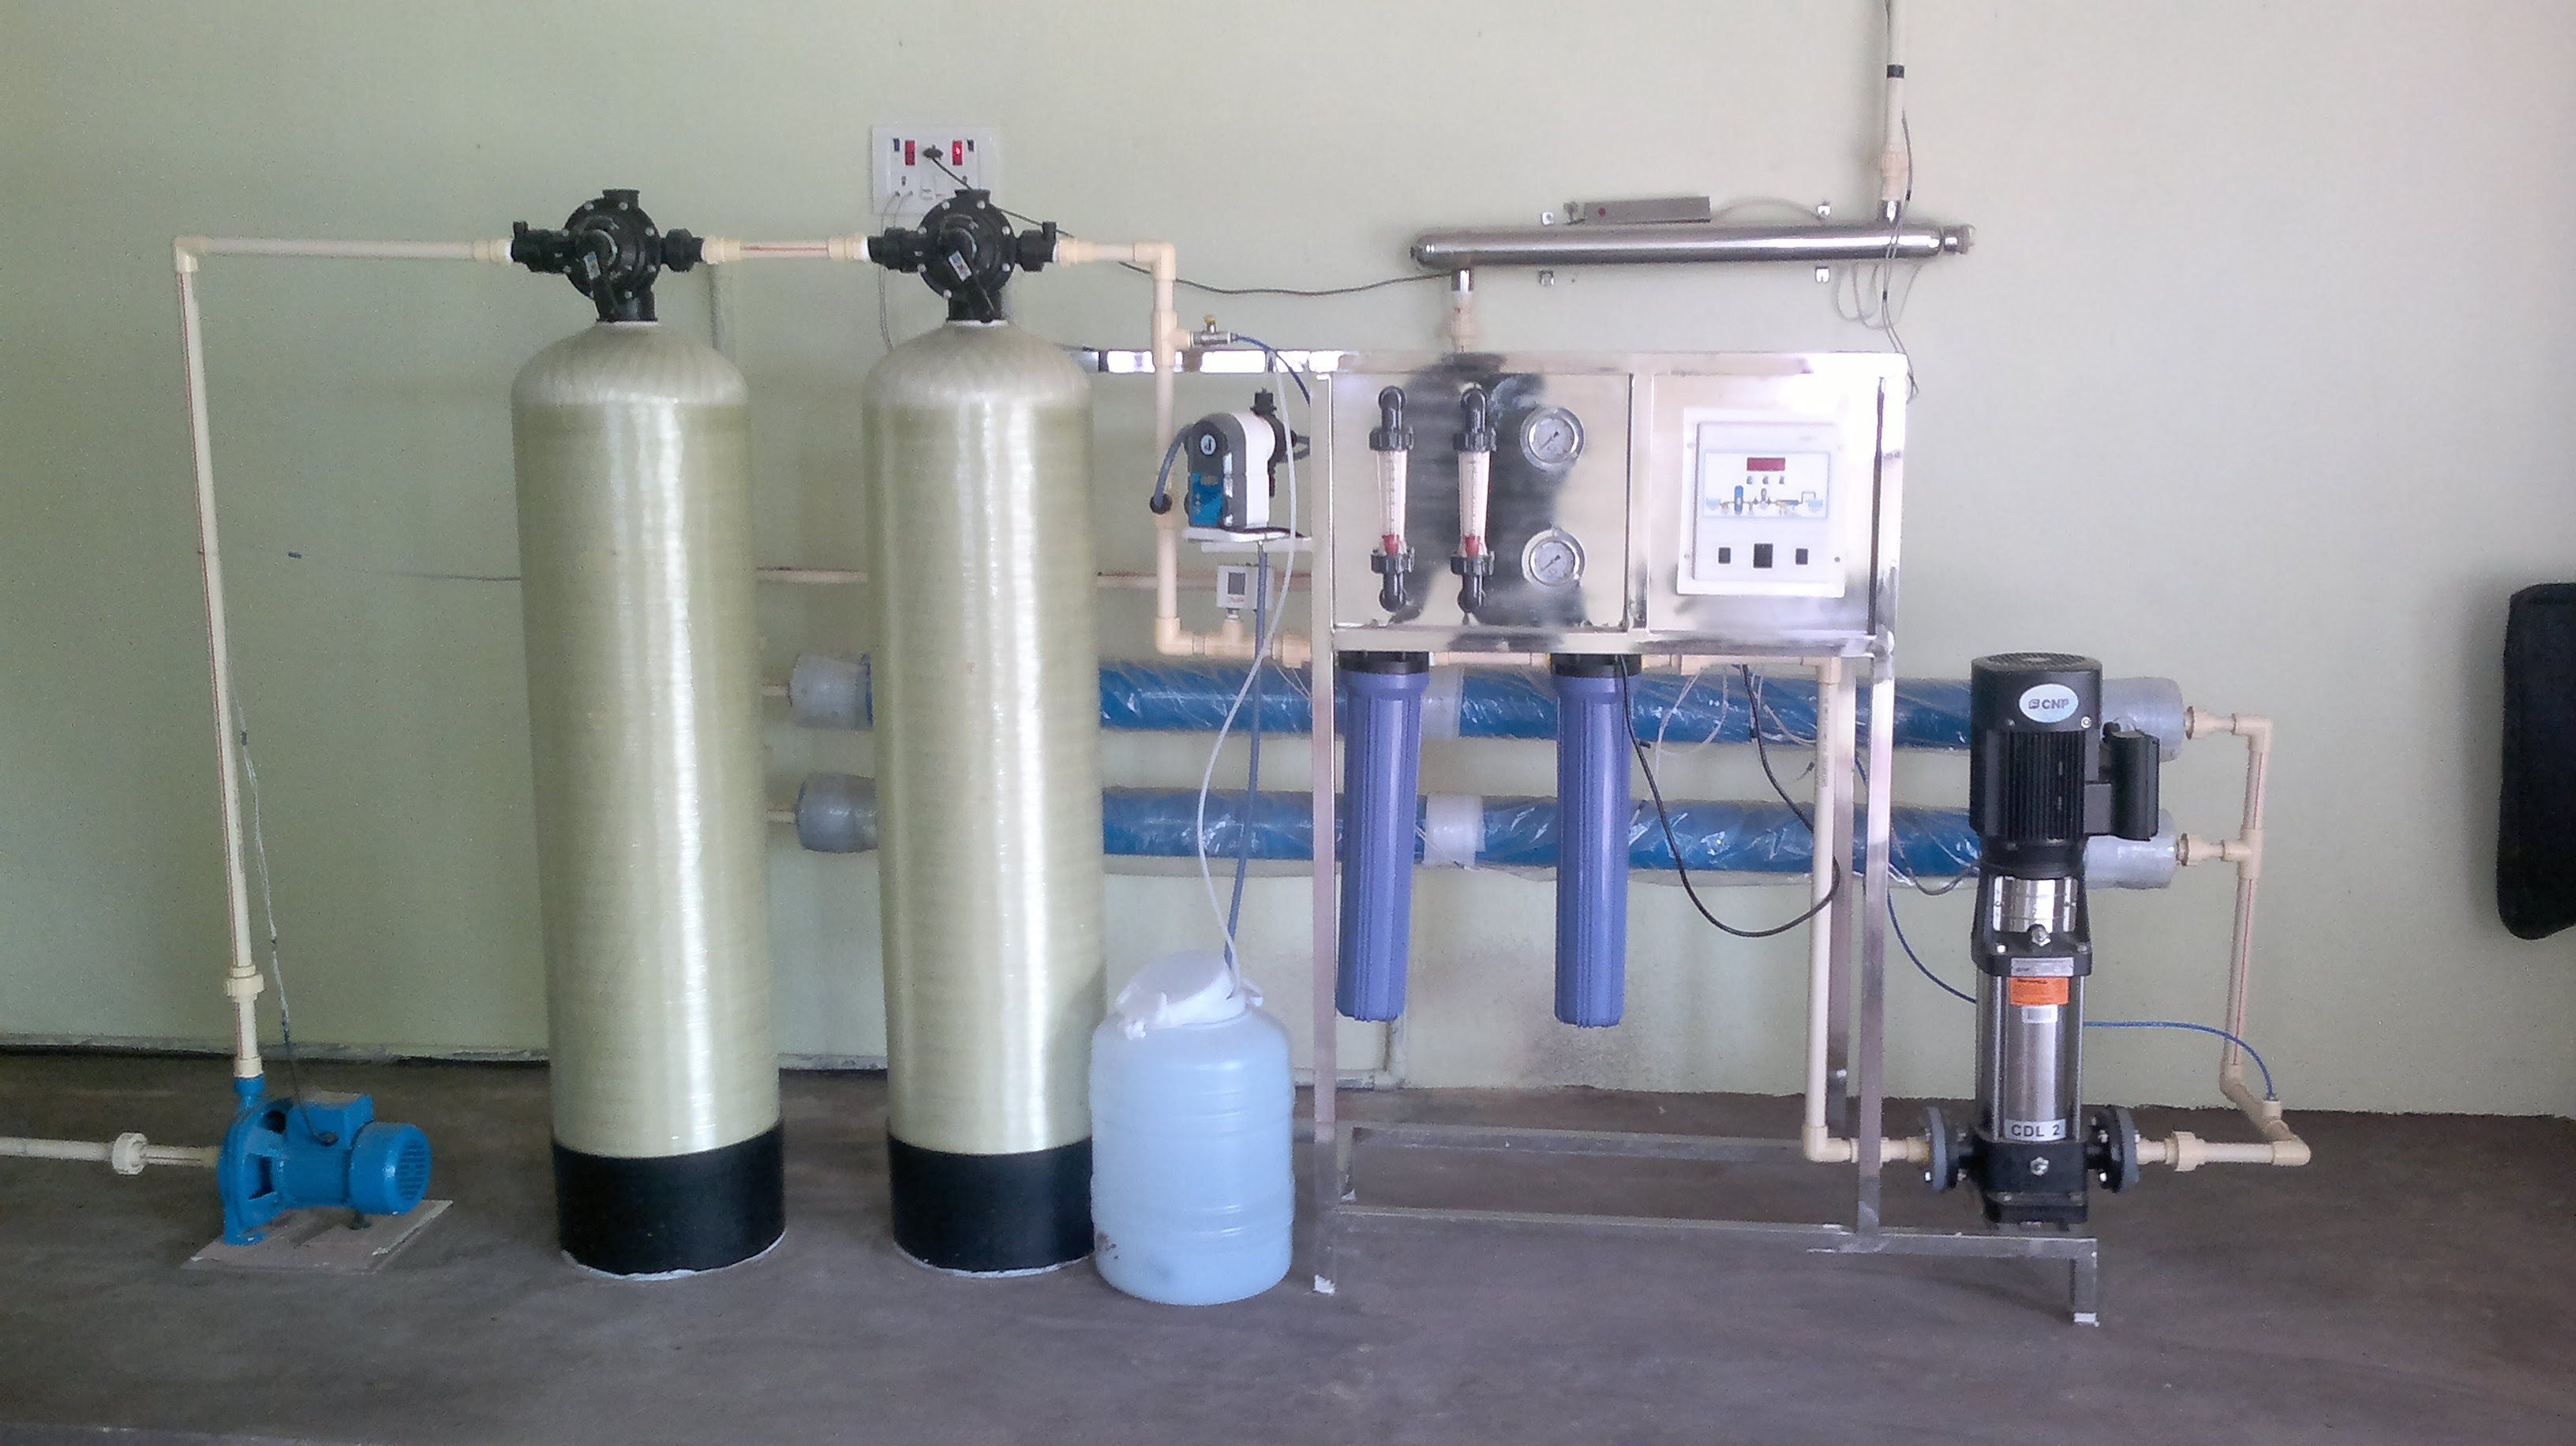 Industrial Ro Plant Industrial Reverse Osmosis Systems Remove Up To 99 9 Of Salts And Contaminat May Lọc Nước Cong Nghiệp Nước